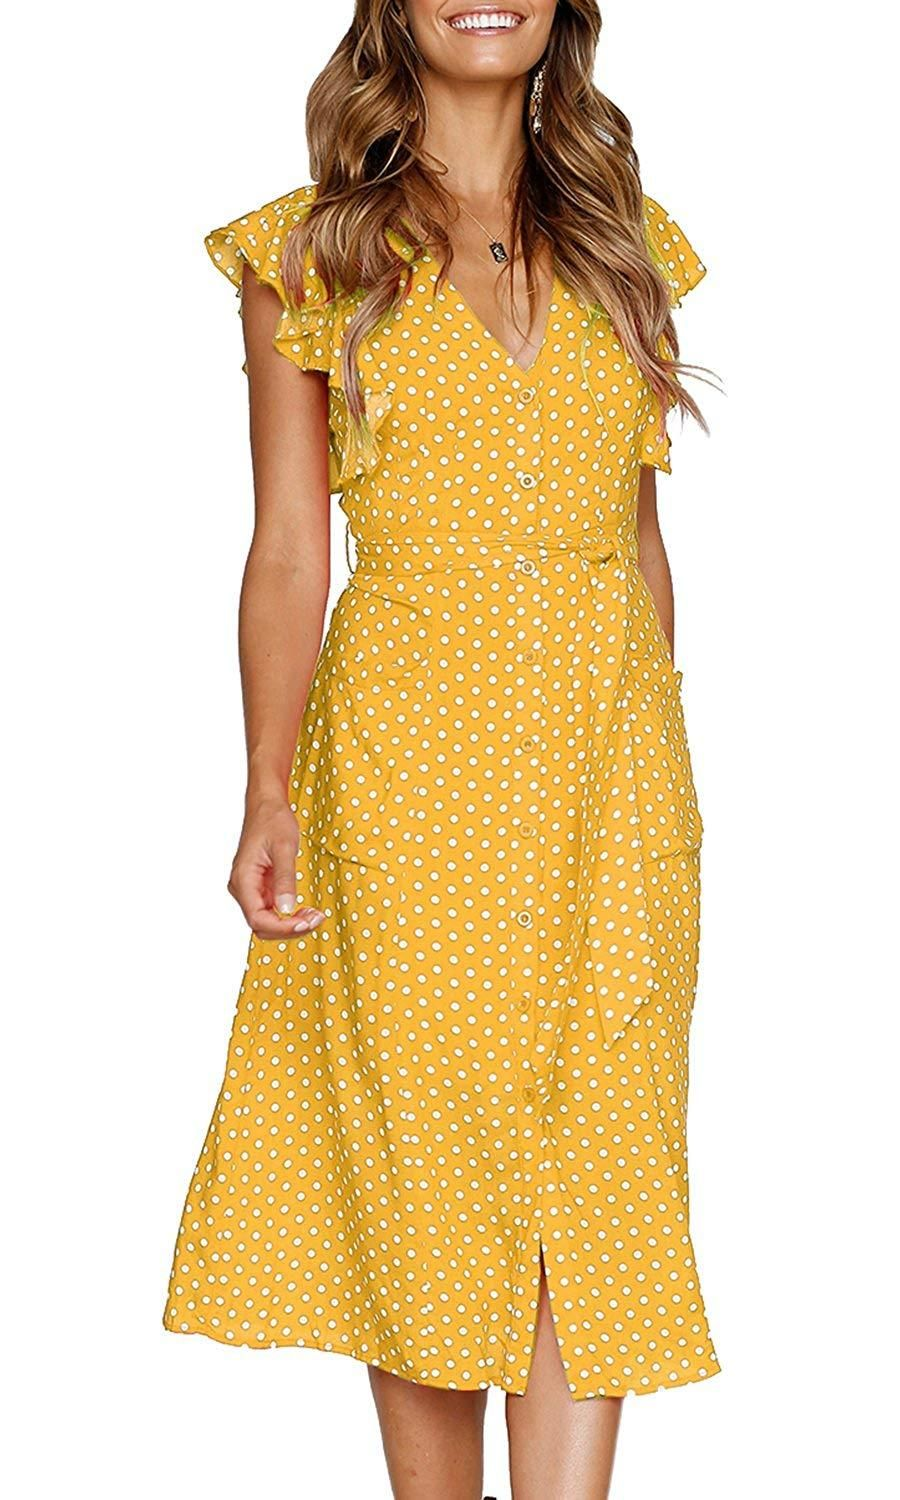 22370e43b3c9 MITILLY Women's Summer Boho Polka Dot Sleeveless V Neck Swing Midi Dress  Pockets